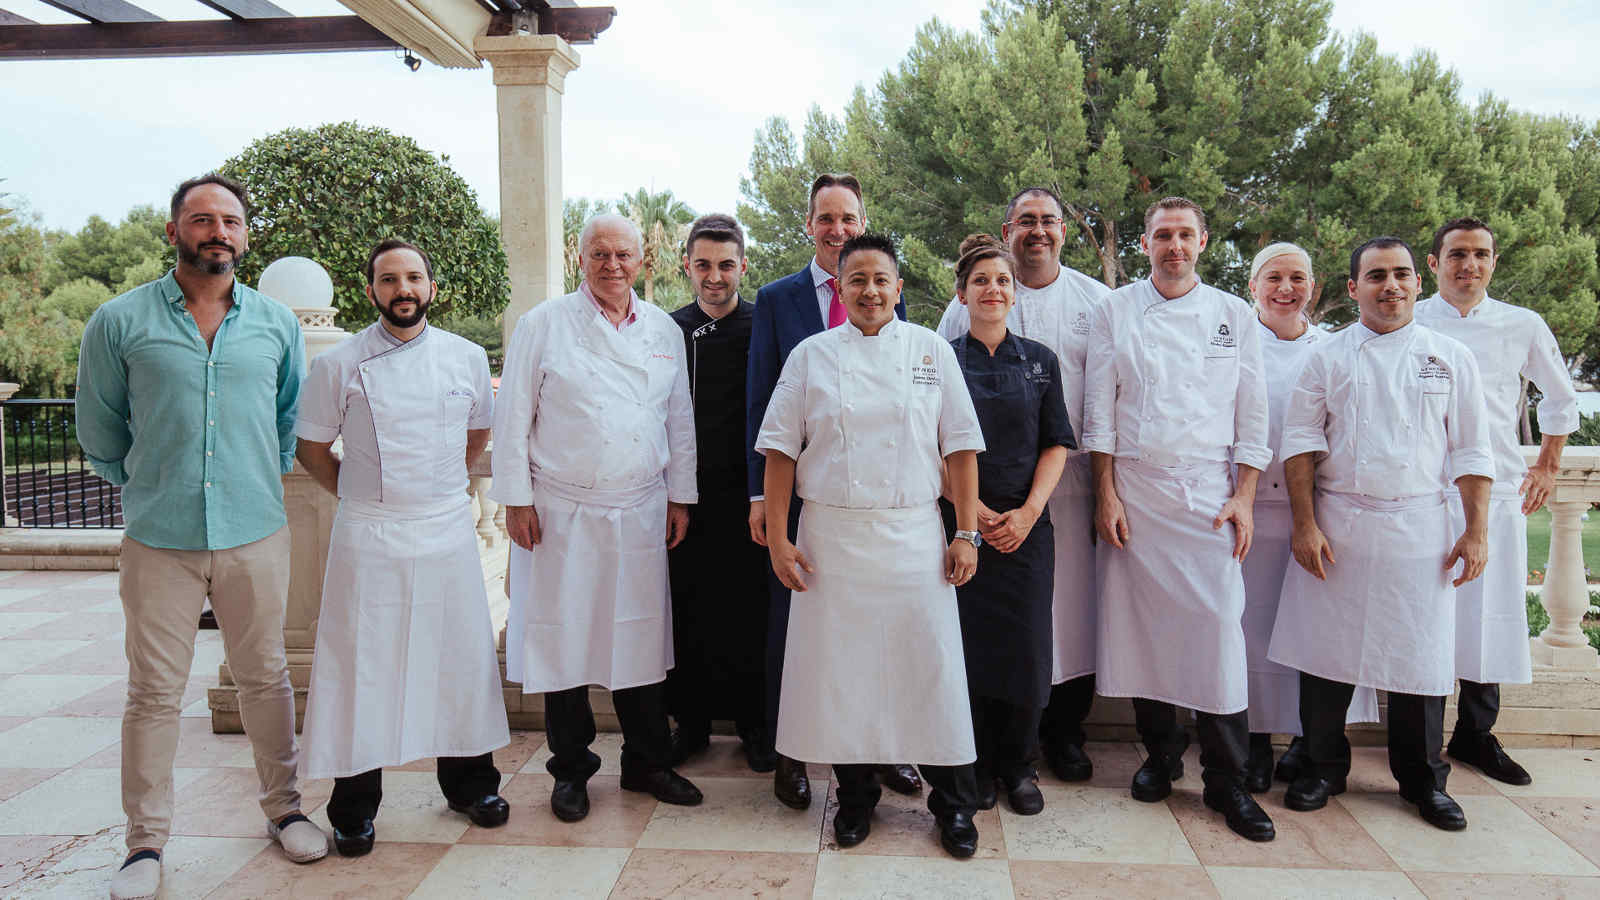 The 10 chefs of the Culinary Safari 2017 at the St. Regis Majorca